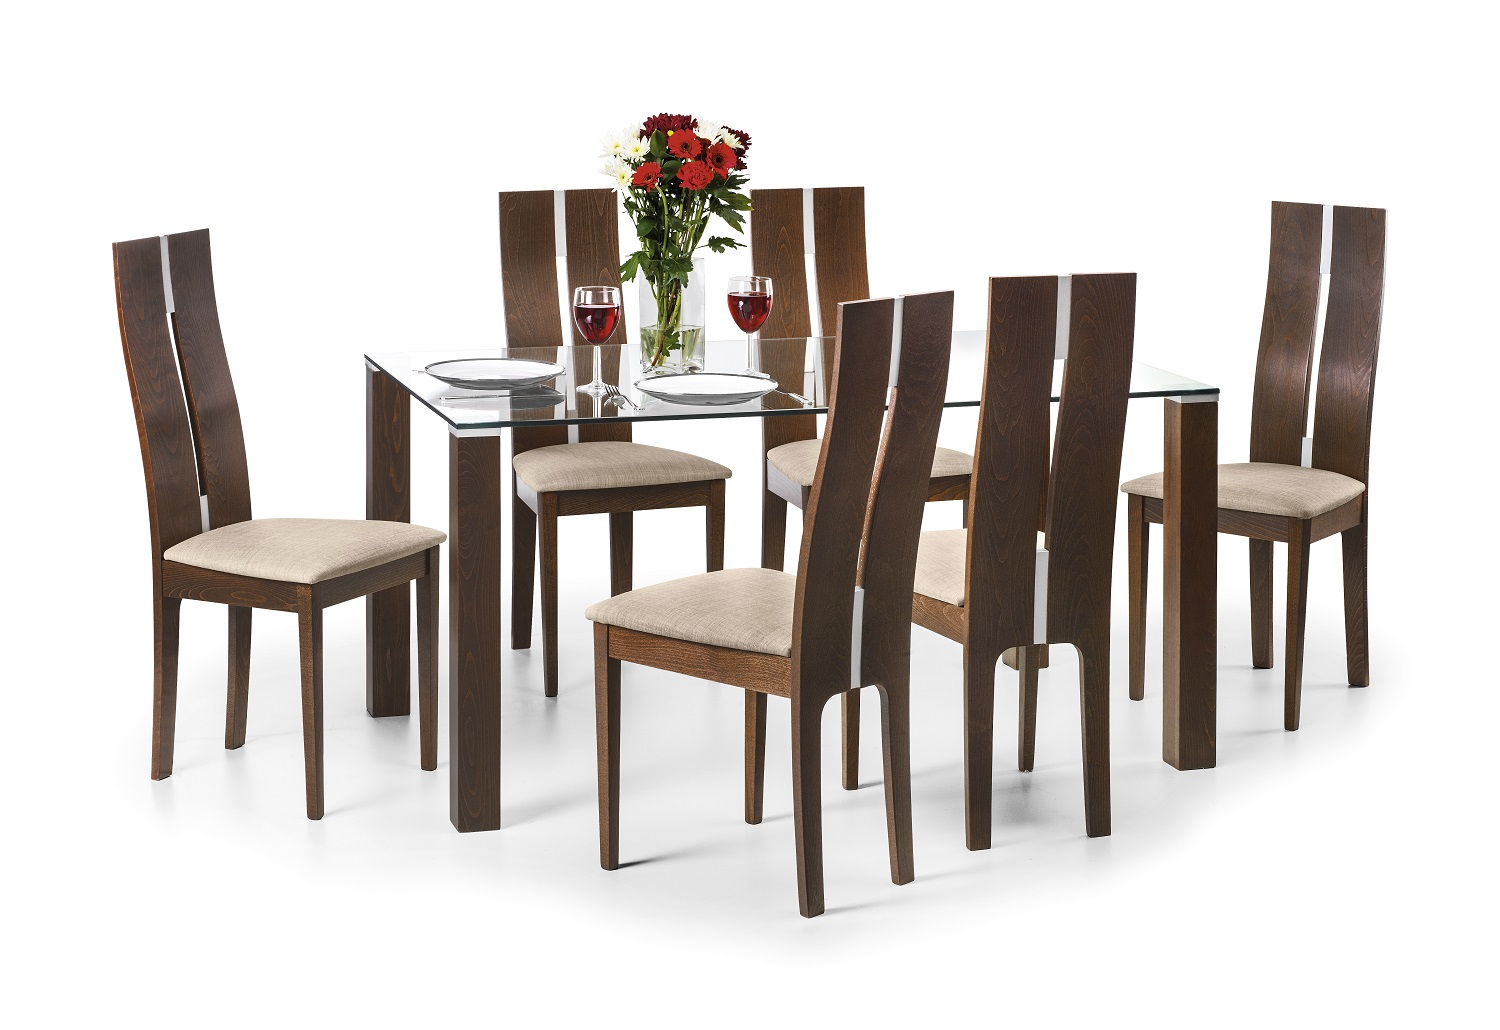 Cayman dining table 6 chairs 1 jpg